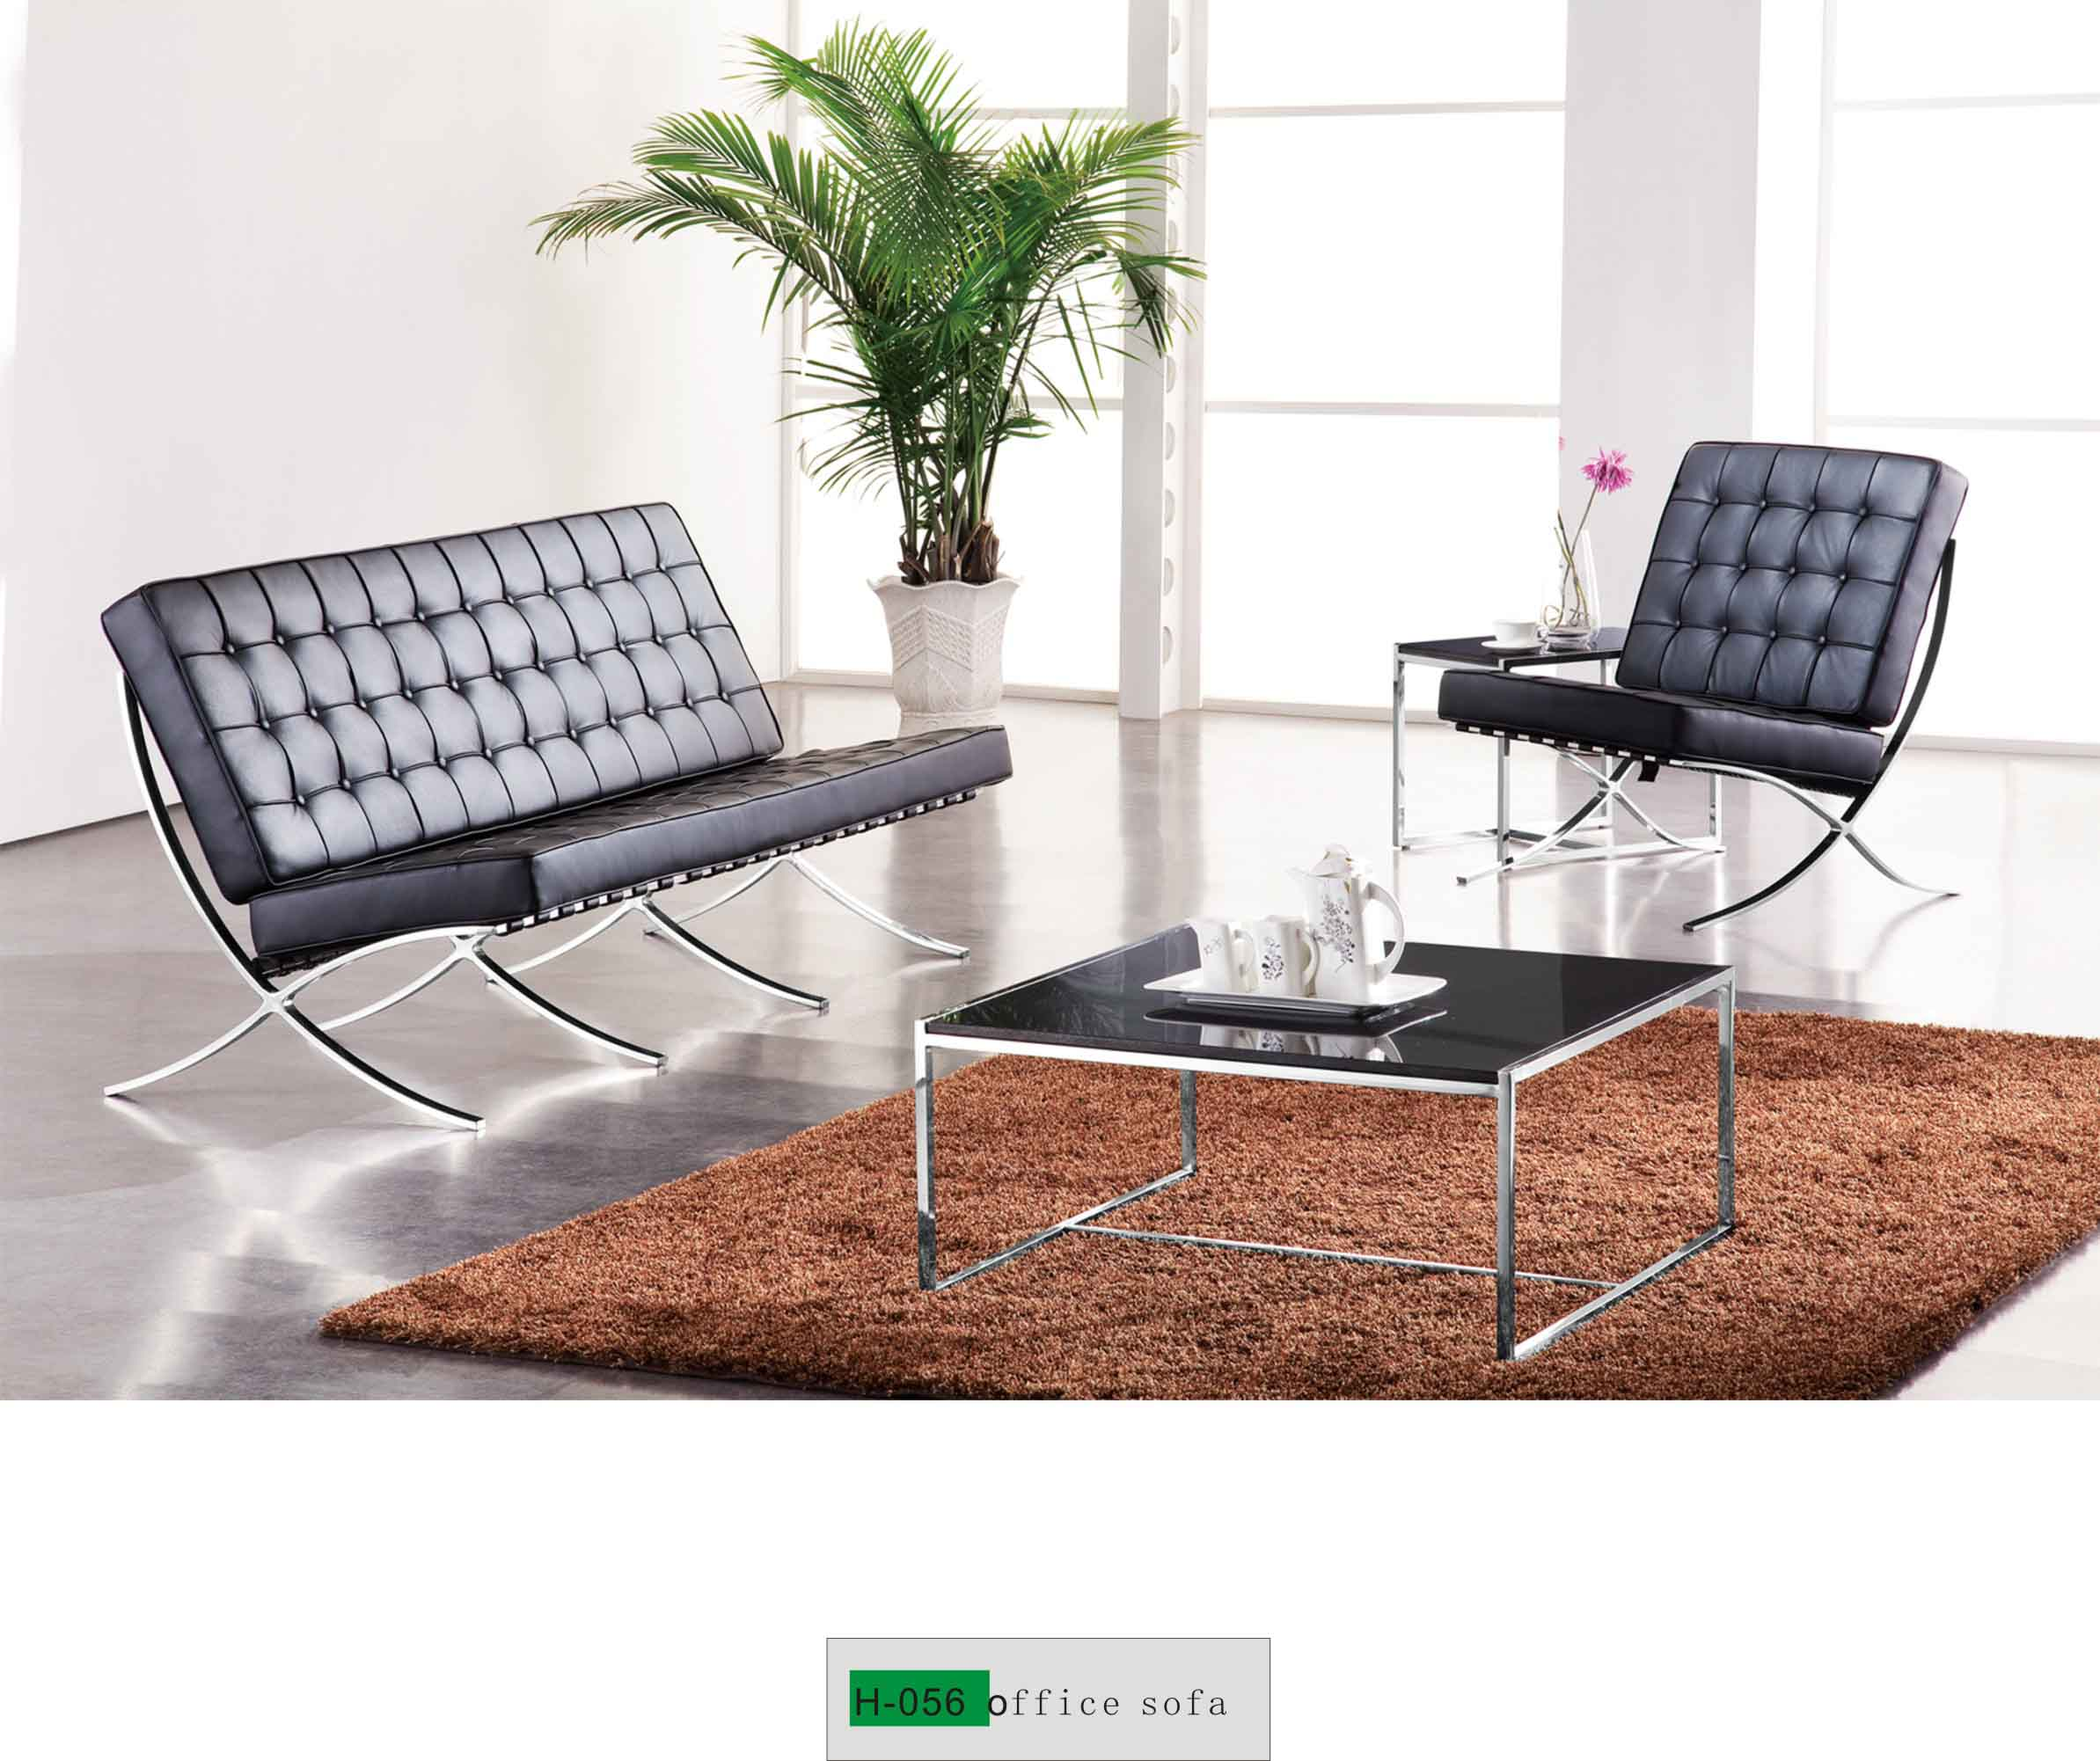 Steel Office Sofa Set H-056 - Buy high end office sofa, contemporary ...